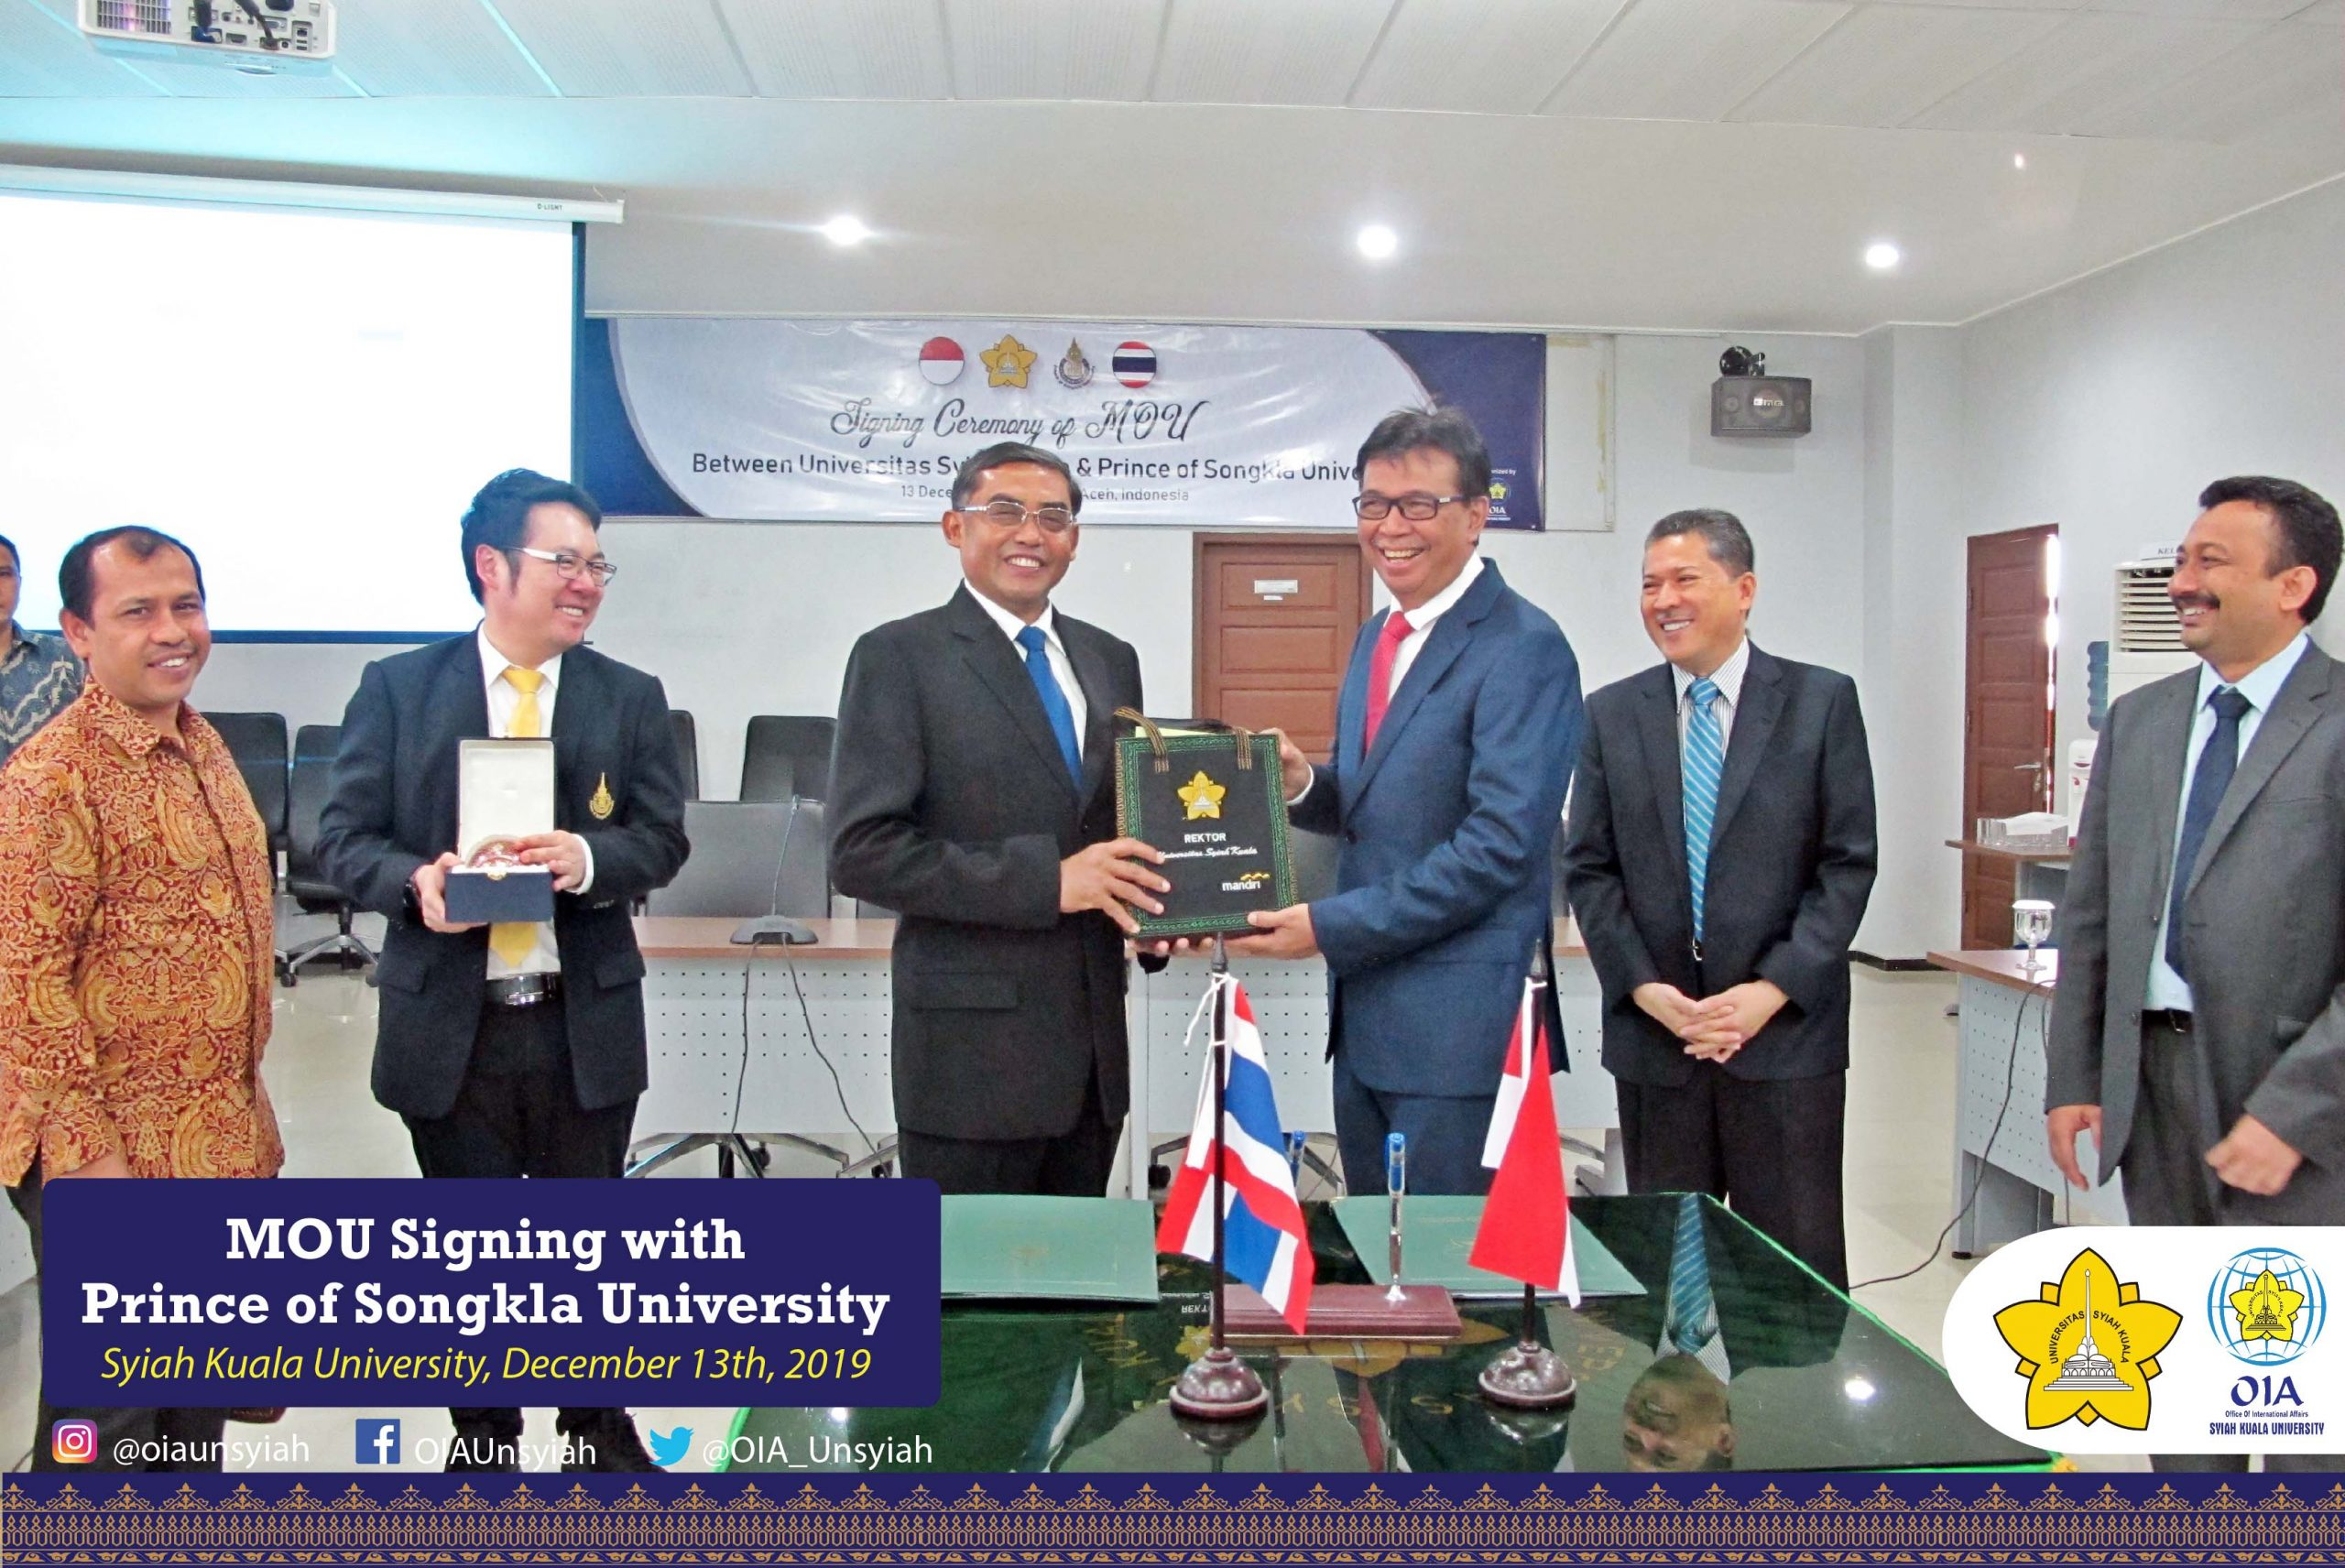 MOU Signing with Prince of Songkla University